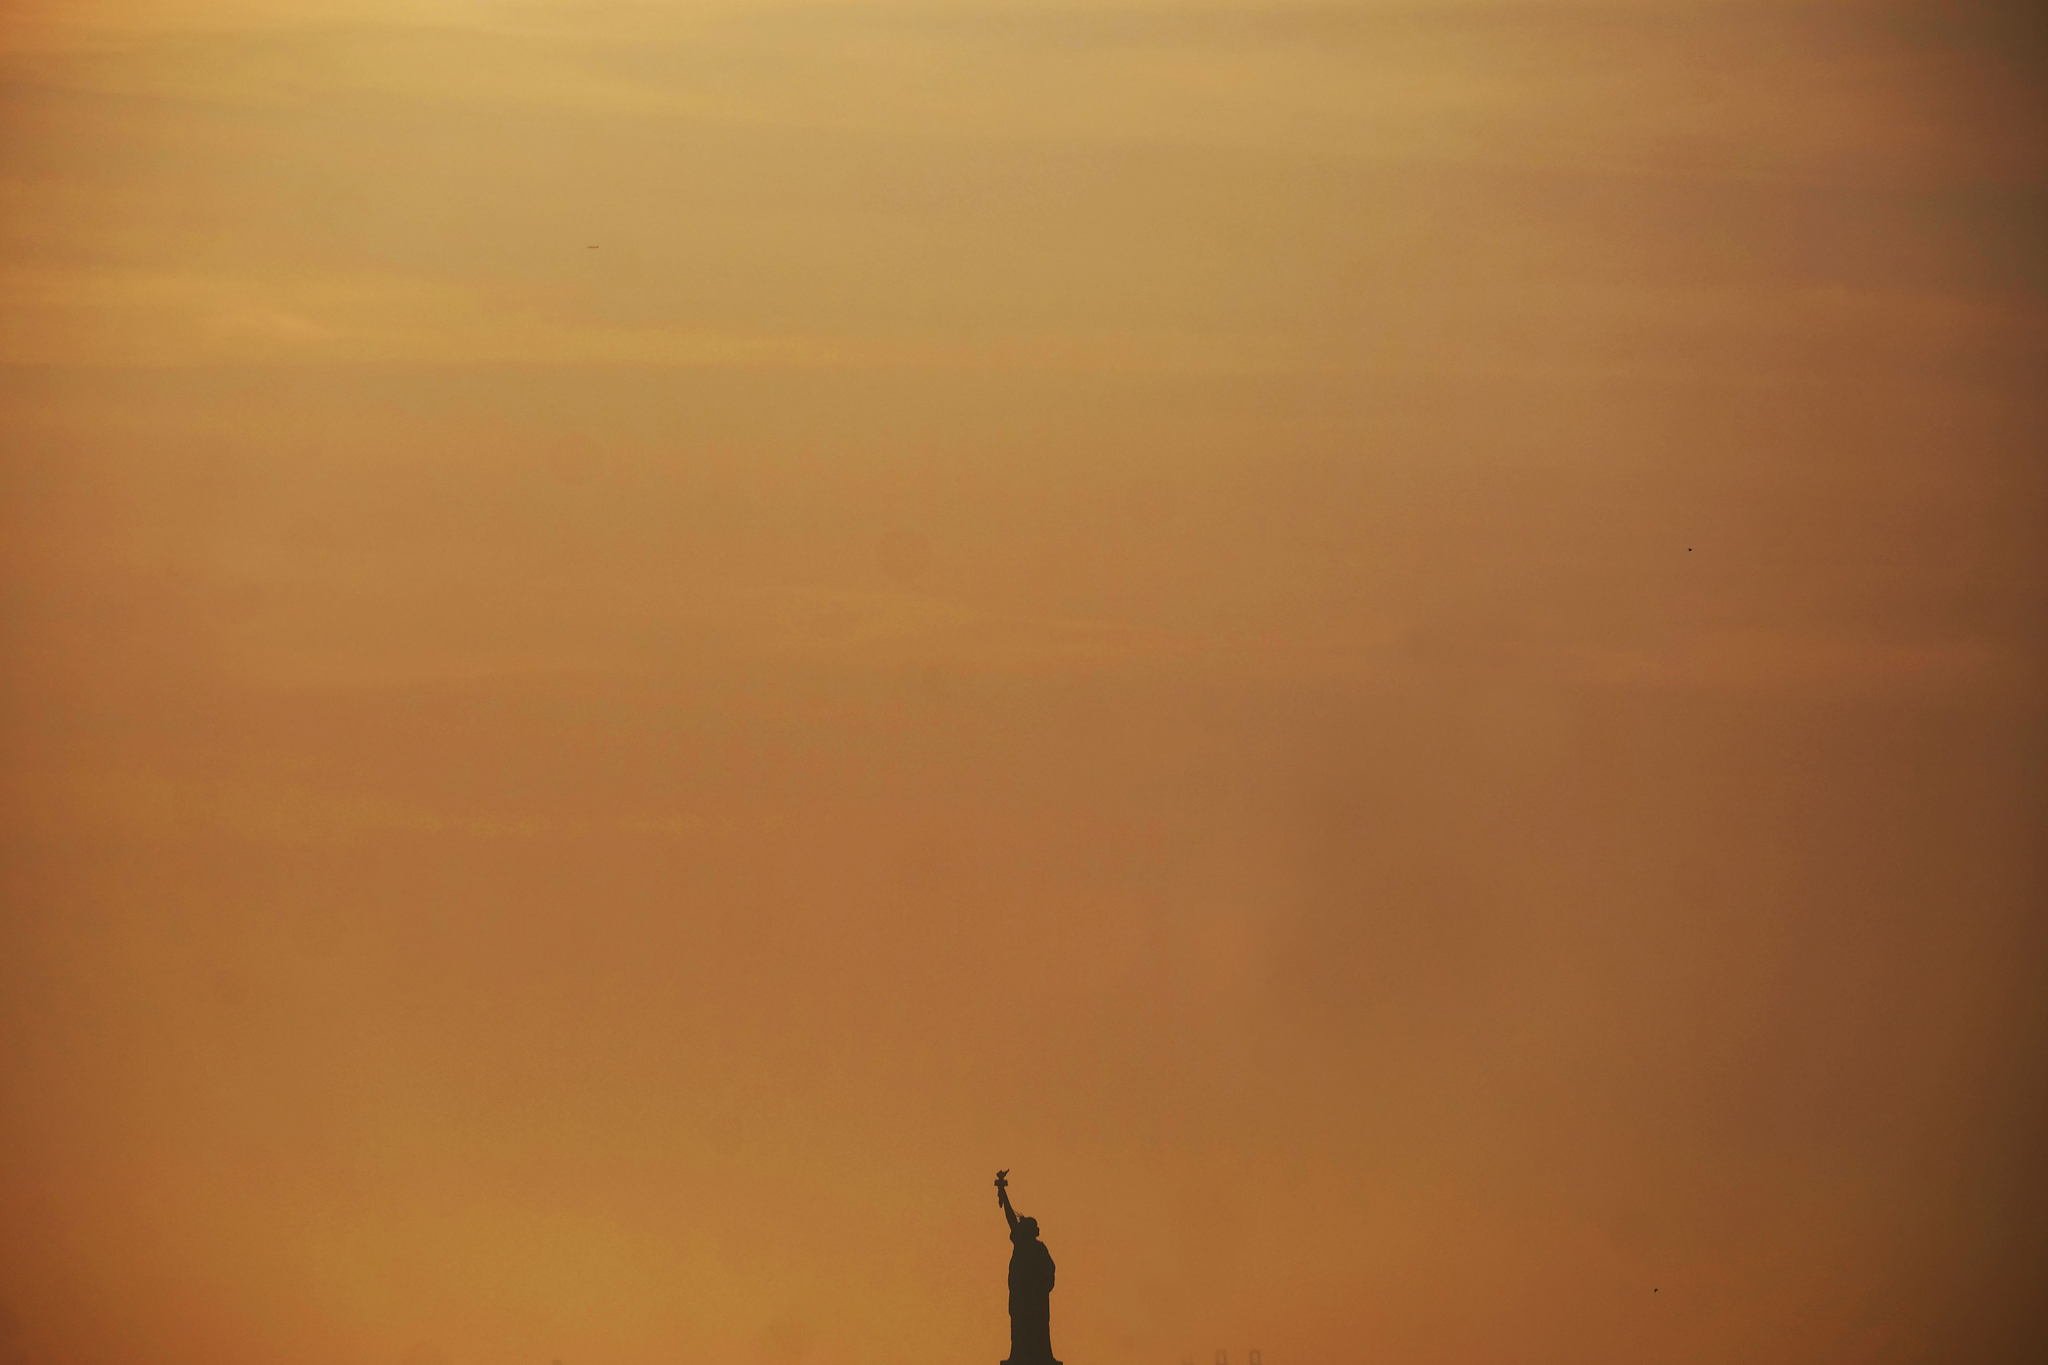 TOPSHOT - The Statue of Liberty is pictu...TOPSHOT - The Statue of Liberty is pictured during sunset in New York, on March 8, 2016.  / AFP / Jewel SAMADJEWEL SAMAD/AFP/Getty Images